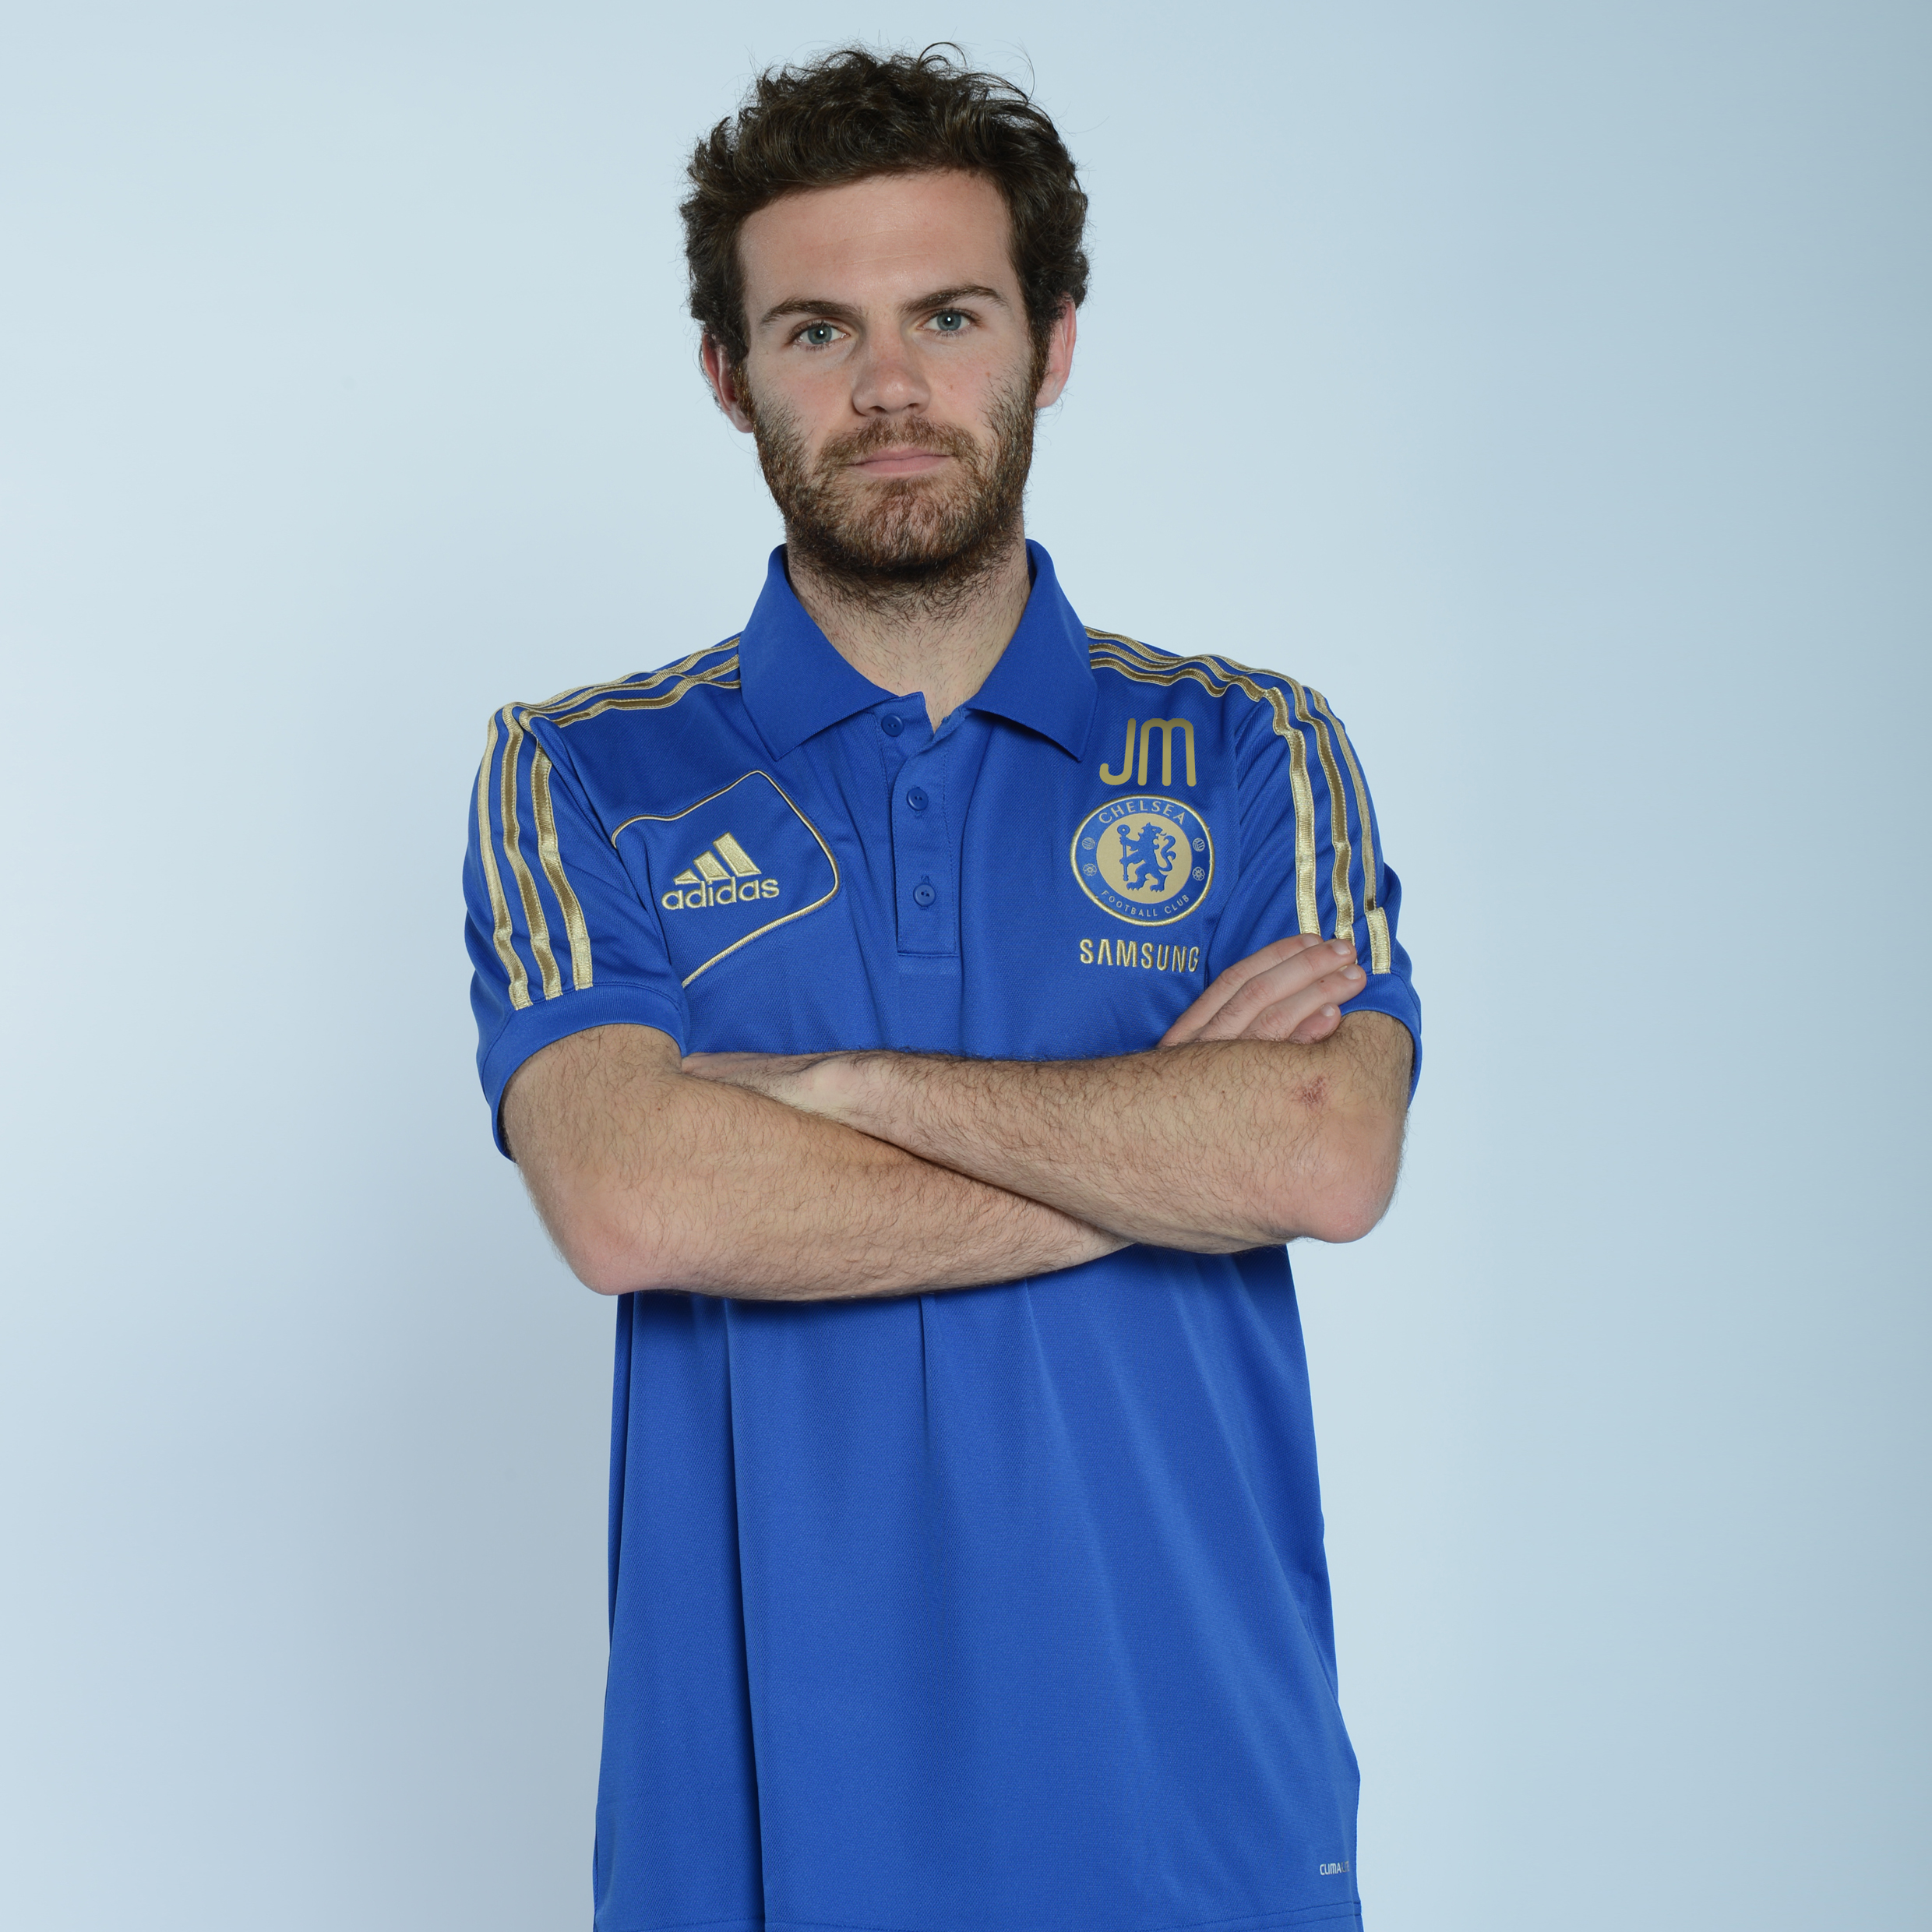 adidas Chelsea Training Polo - Reflex Blue/Light Football Gold